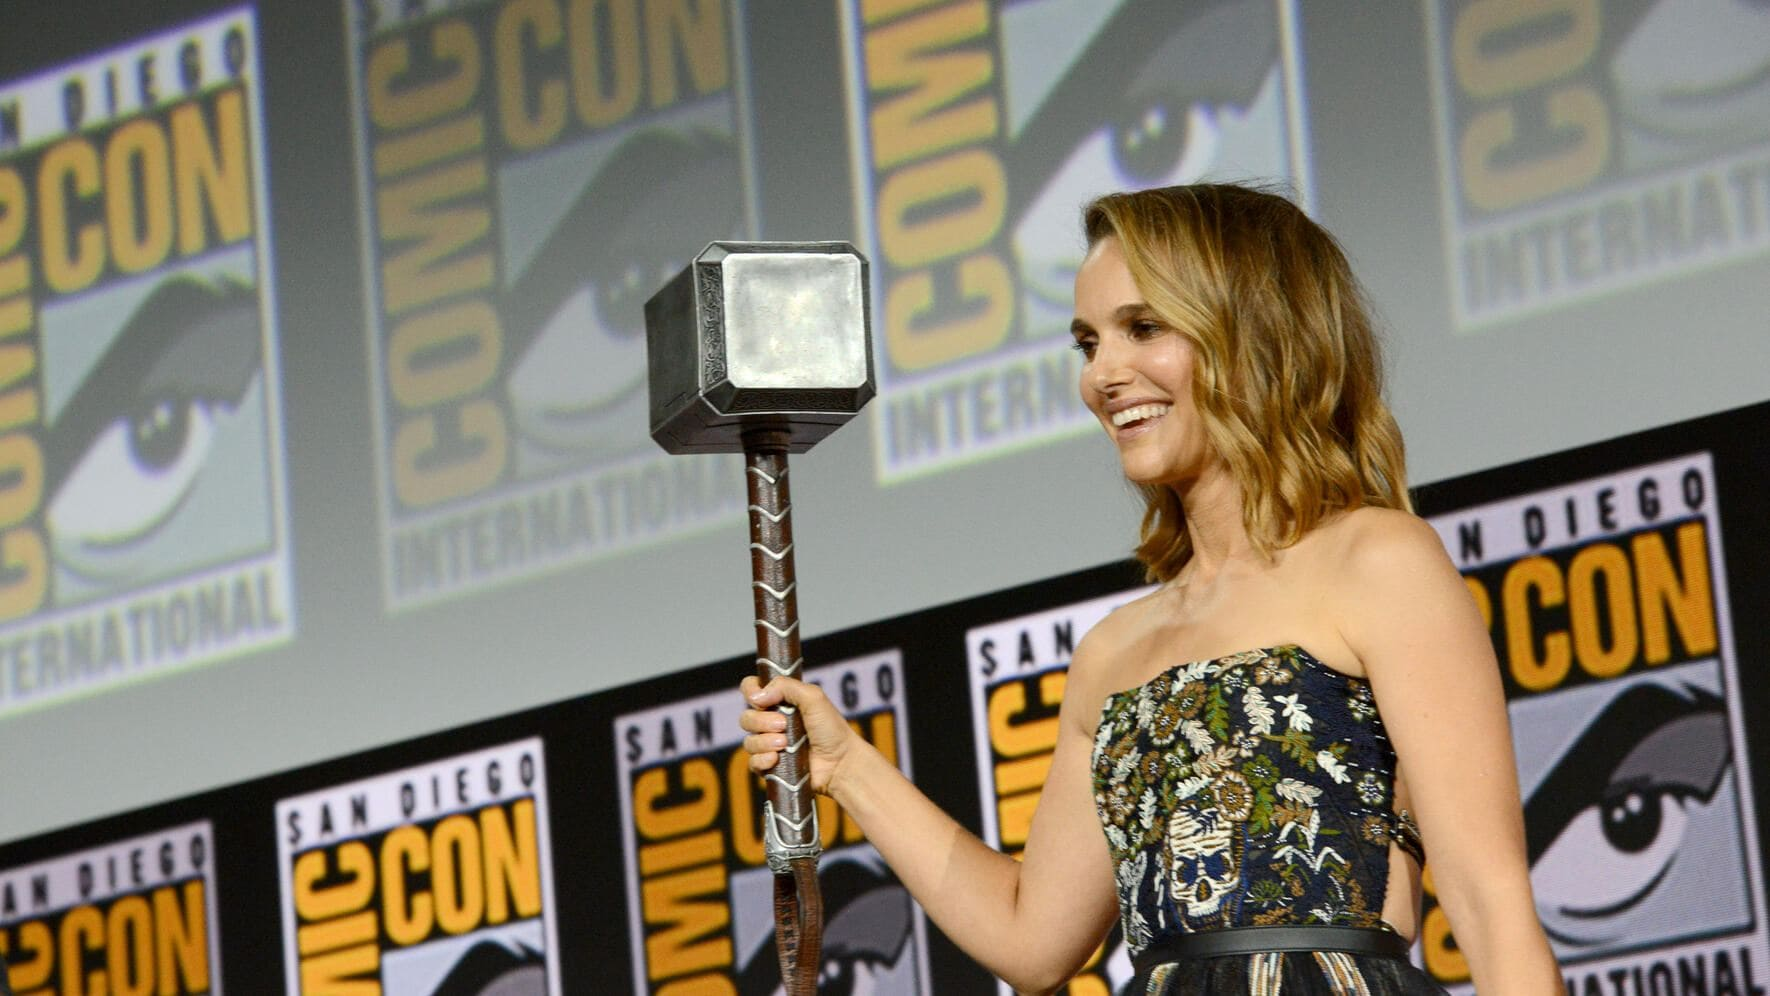 SAN DIEGO, CALIFORNIA - JULY 20: Natalie Portman speaks at the Marvel Studios Panel during 2019 Comic-Con International at San Diego Convention Center on July 20, 2019 in San Diego, California. (Photo by Albert L. Ortega/Getty Images)